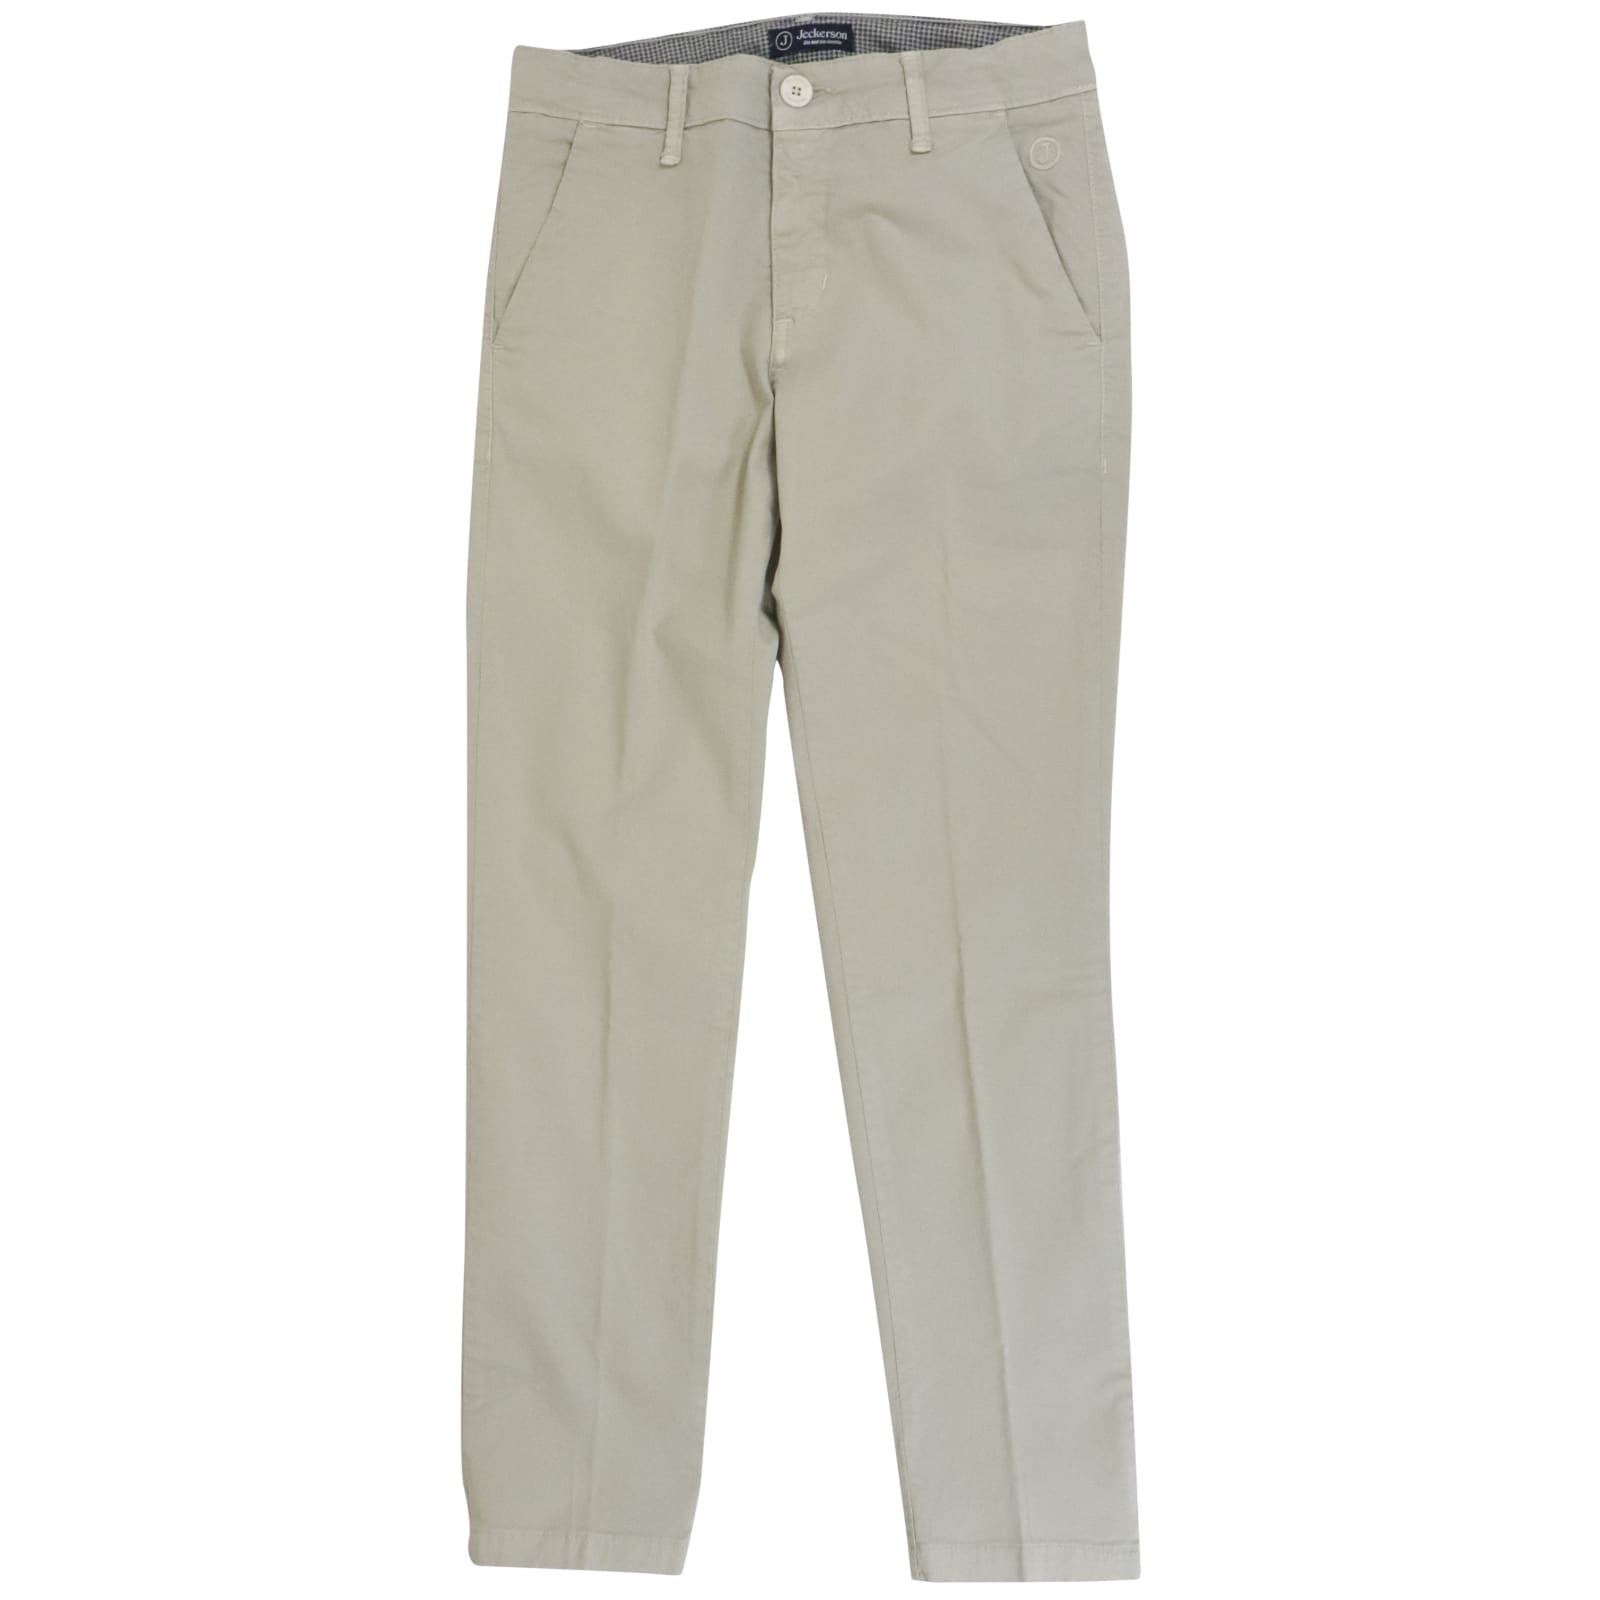 Cinos Trousers